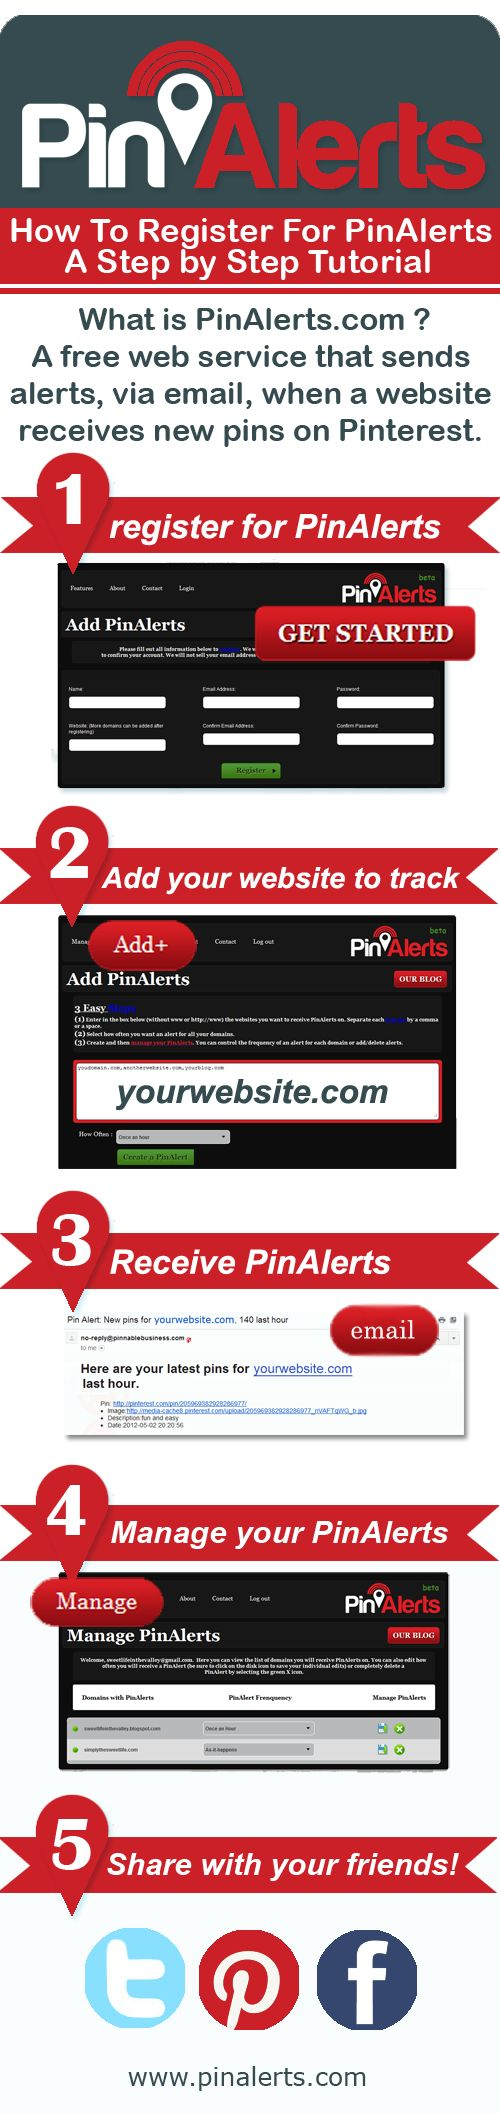 Handige Pinterest tool. 'PinAlerts, how to register for PinAlerts a step by step tutorial' #Infographic #PinAlerts http://pinalerts.com